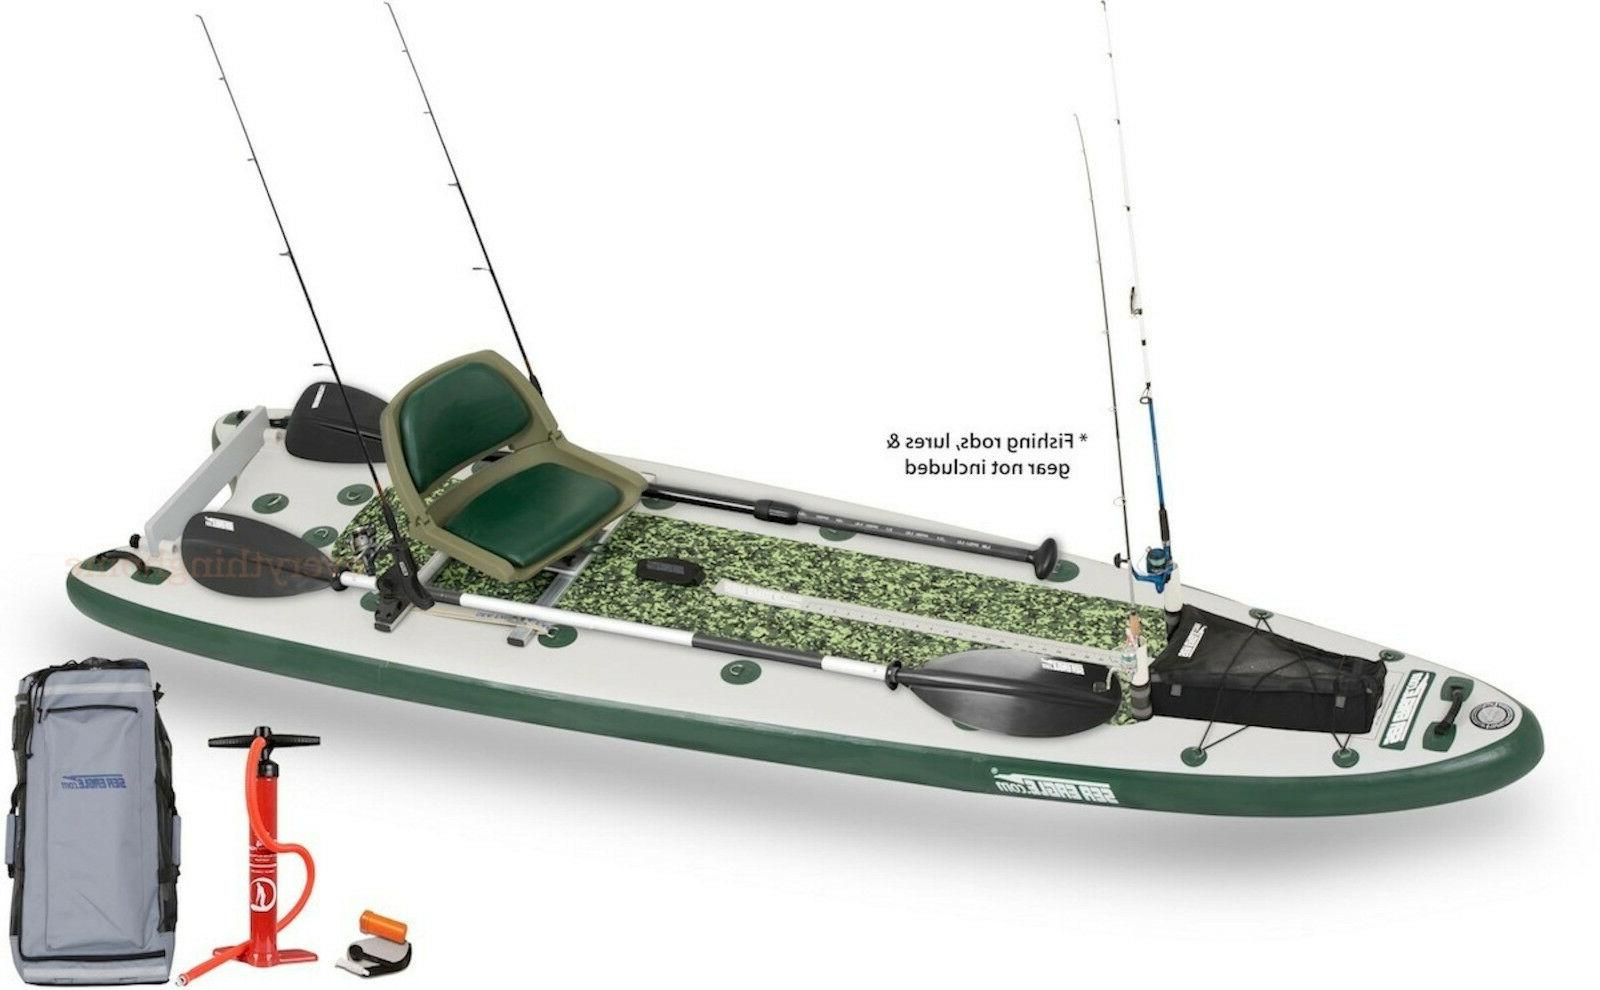 fs126 sup swivel seat fishing rig package